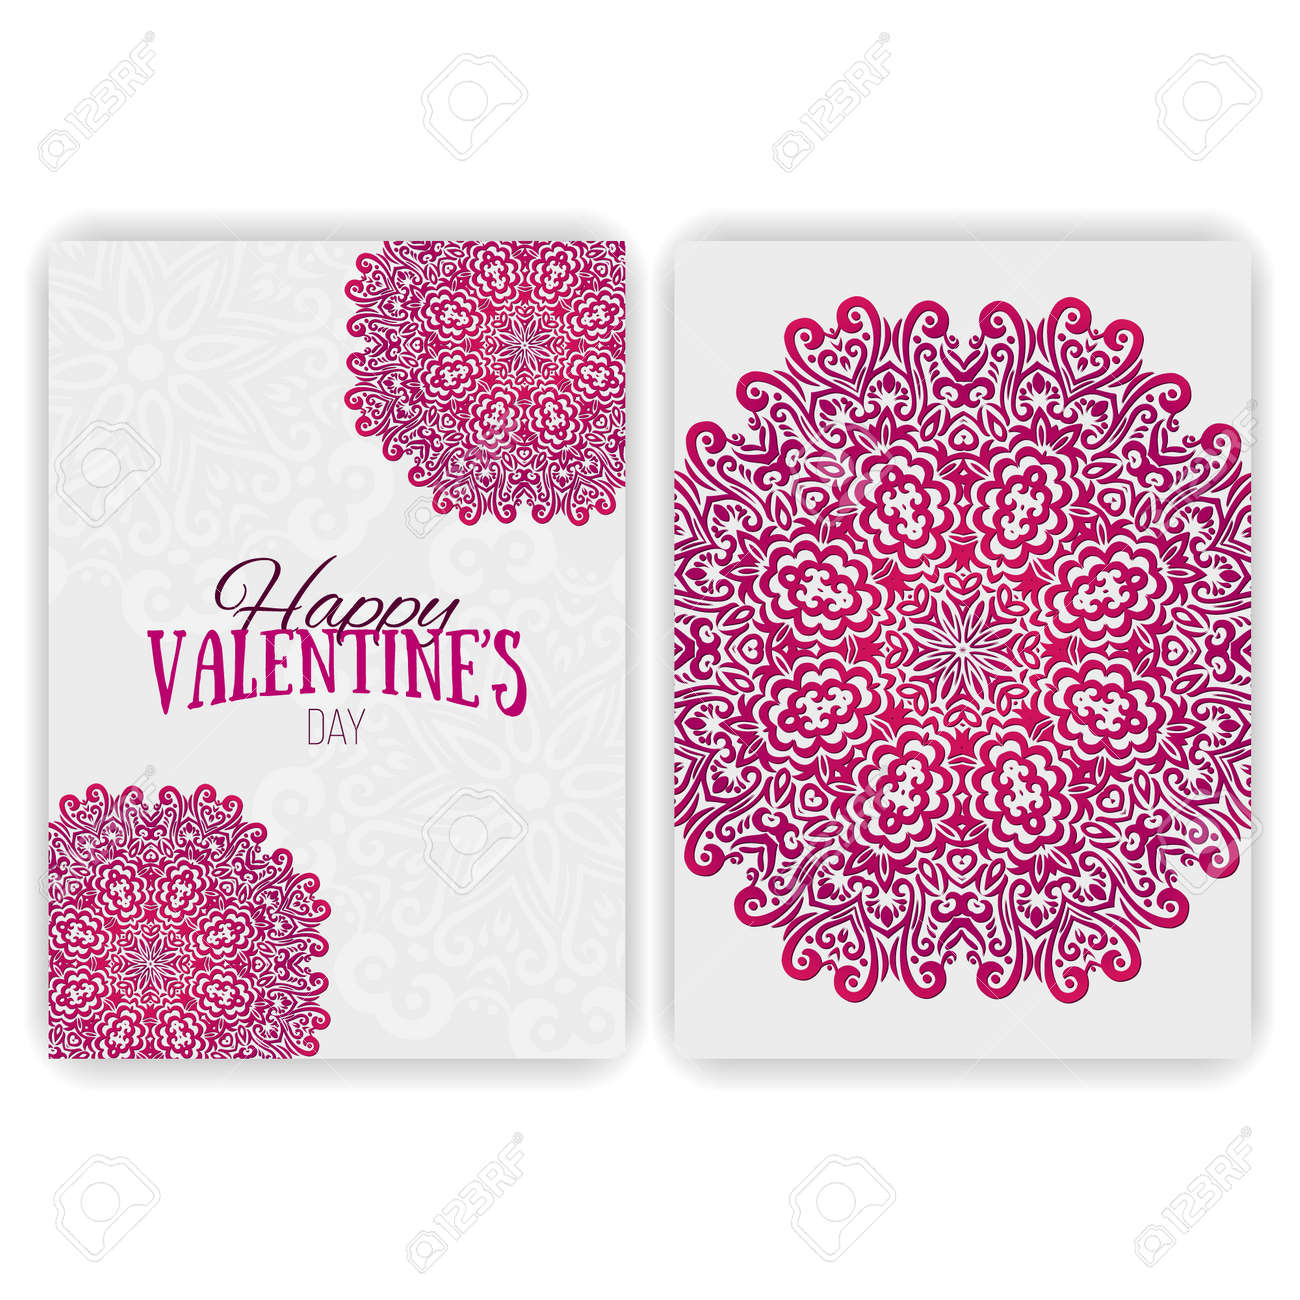 Valentine S Day Card Template Lacy Romantic Indian Style Invitation